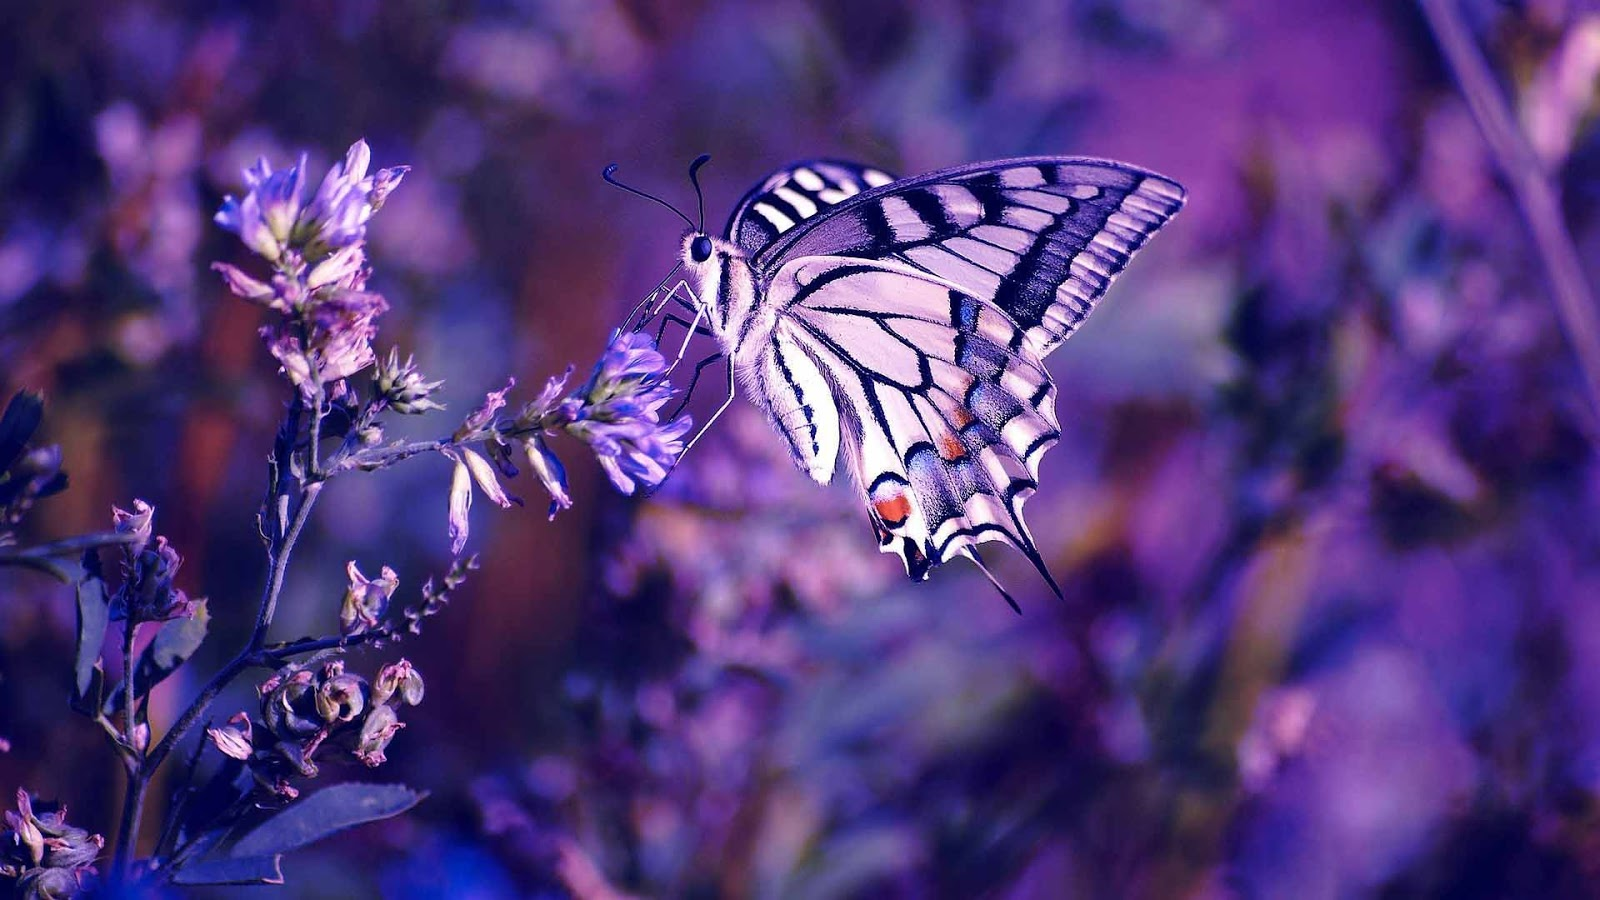 butterfly hq wallpaper 1024x768 - photo #21